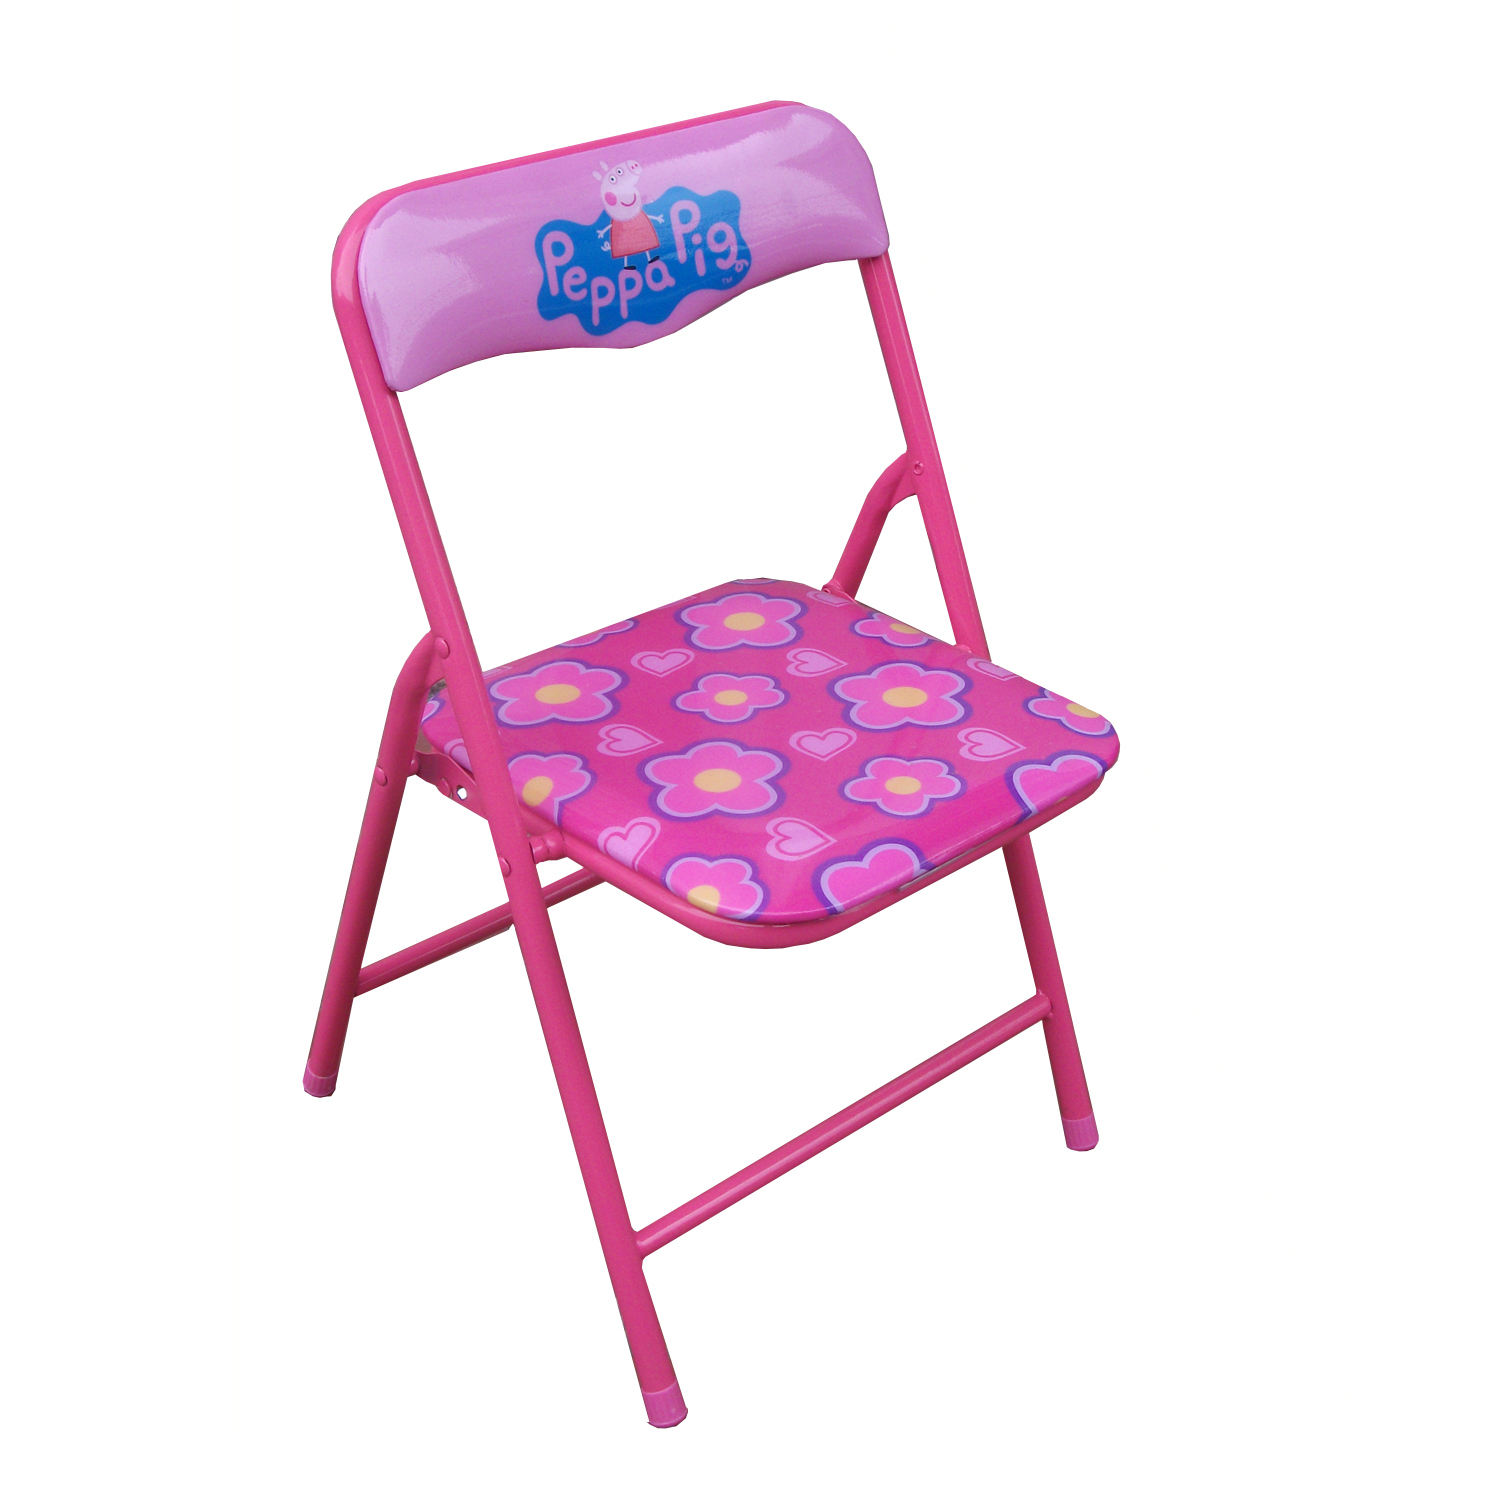 Activity Chair Peppa Pig Pink Folding Activity Chair